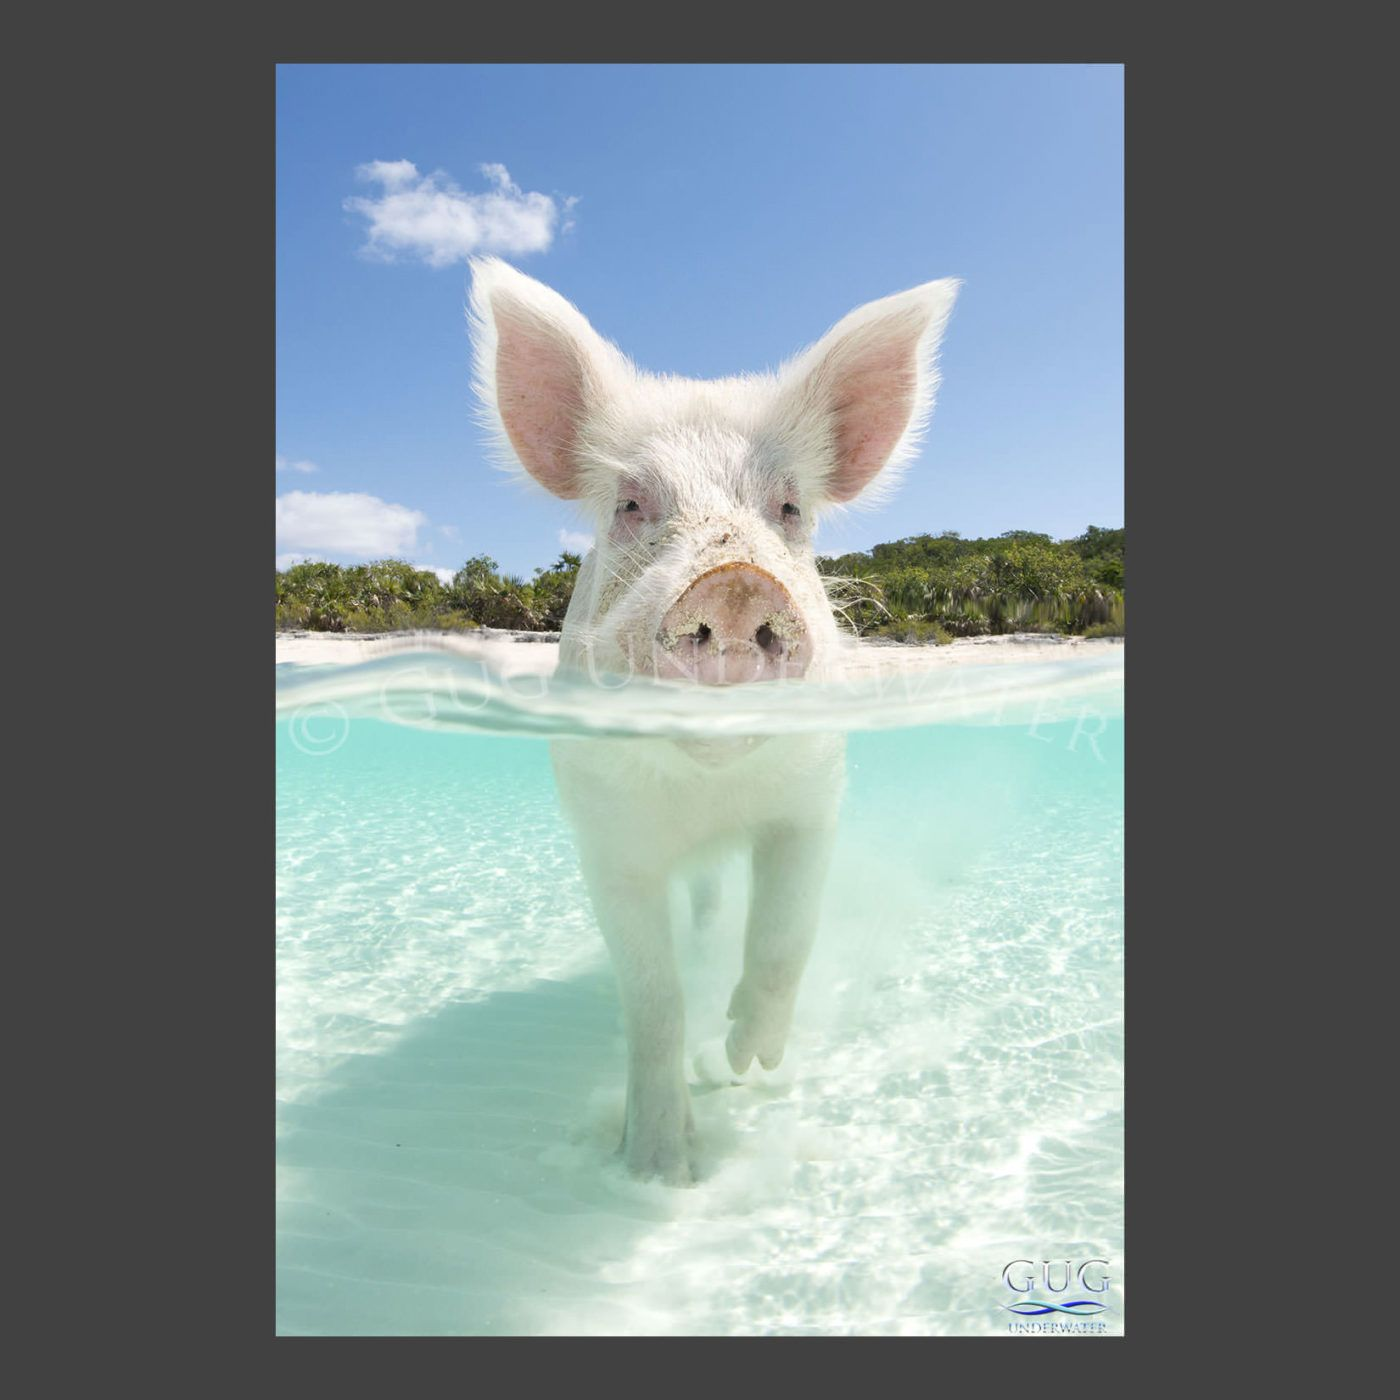 Pig Island, Cute Animals, Vacation Trips